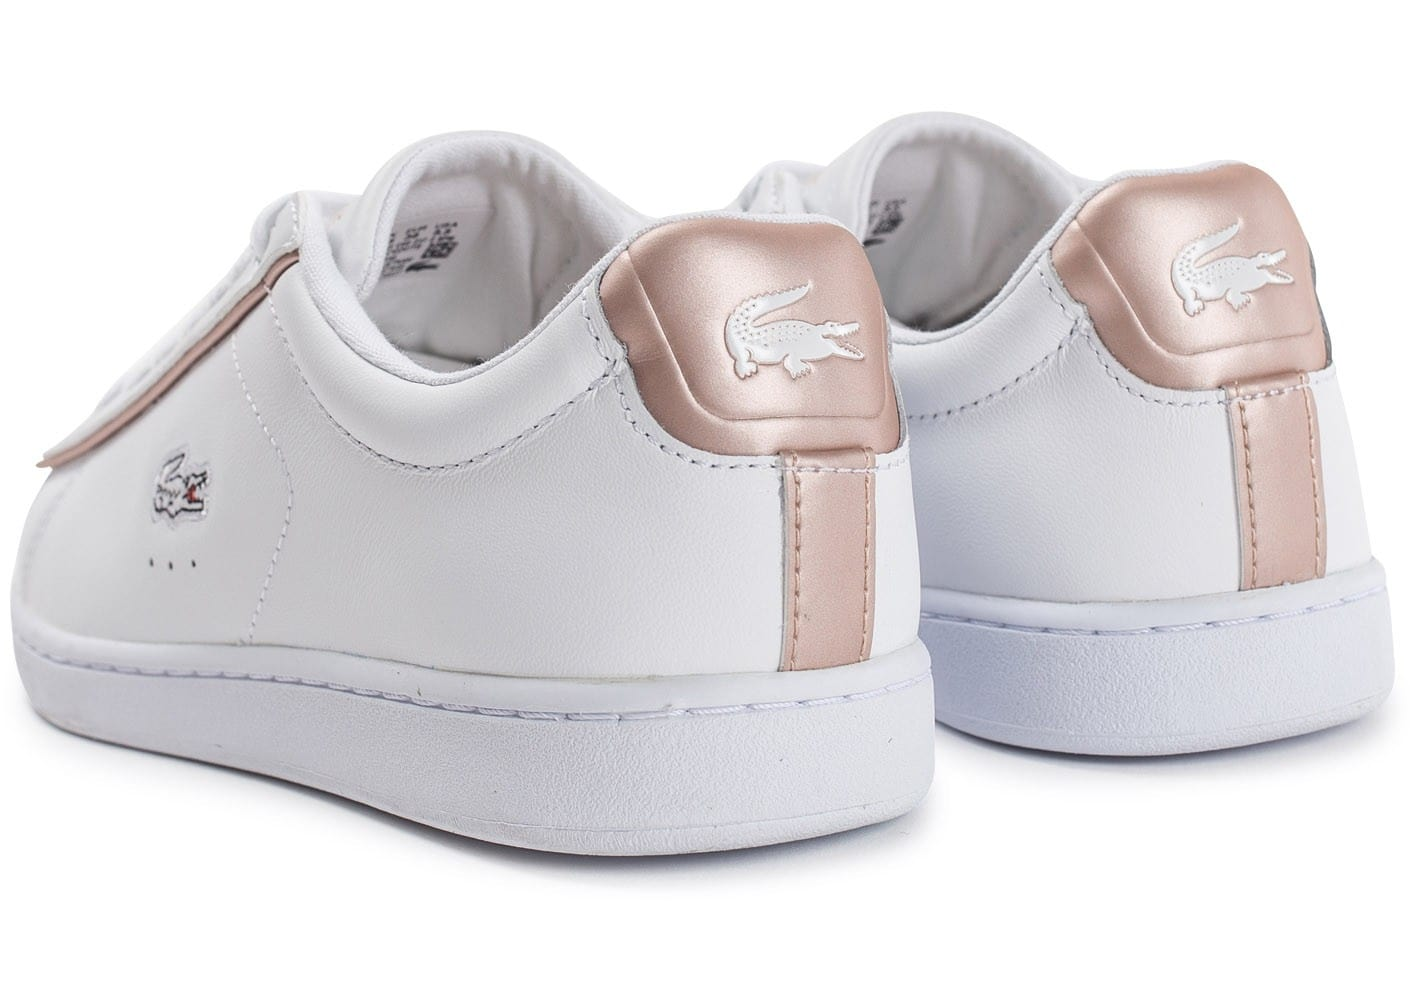 san francisco vente discount disponible Lacoste Carnaby EVO blanche et rose perle - Chaussures Baskets ...